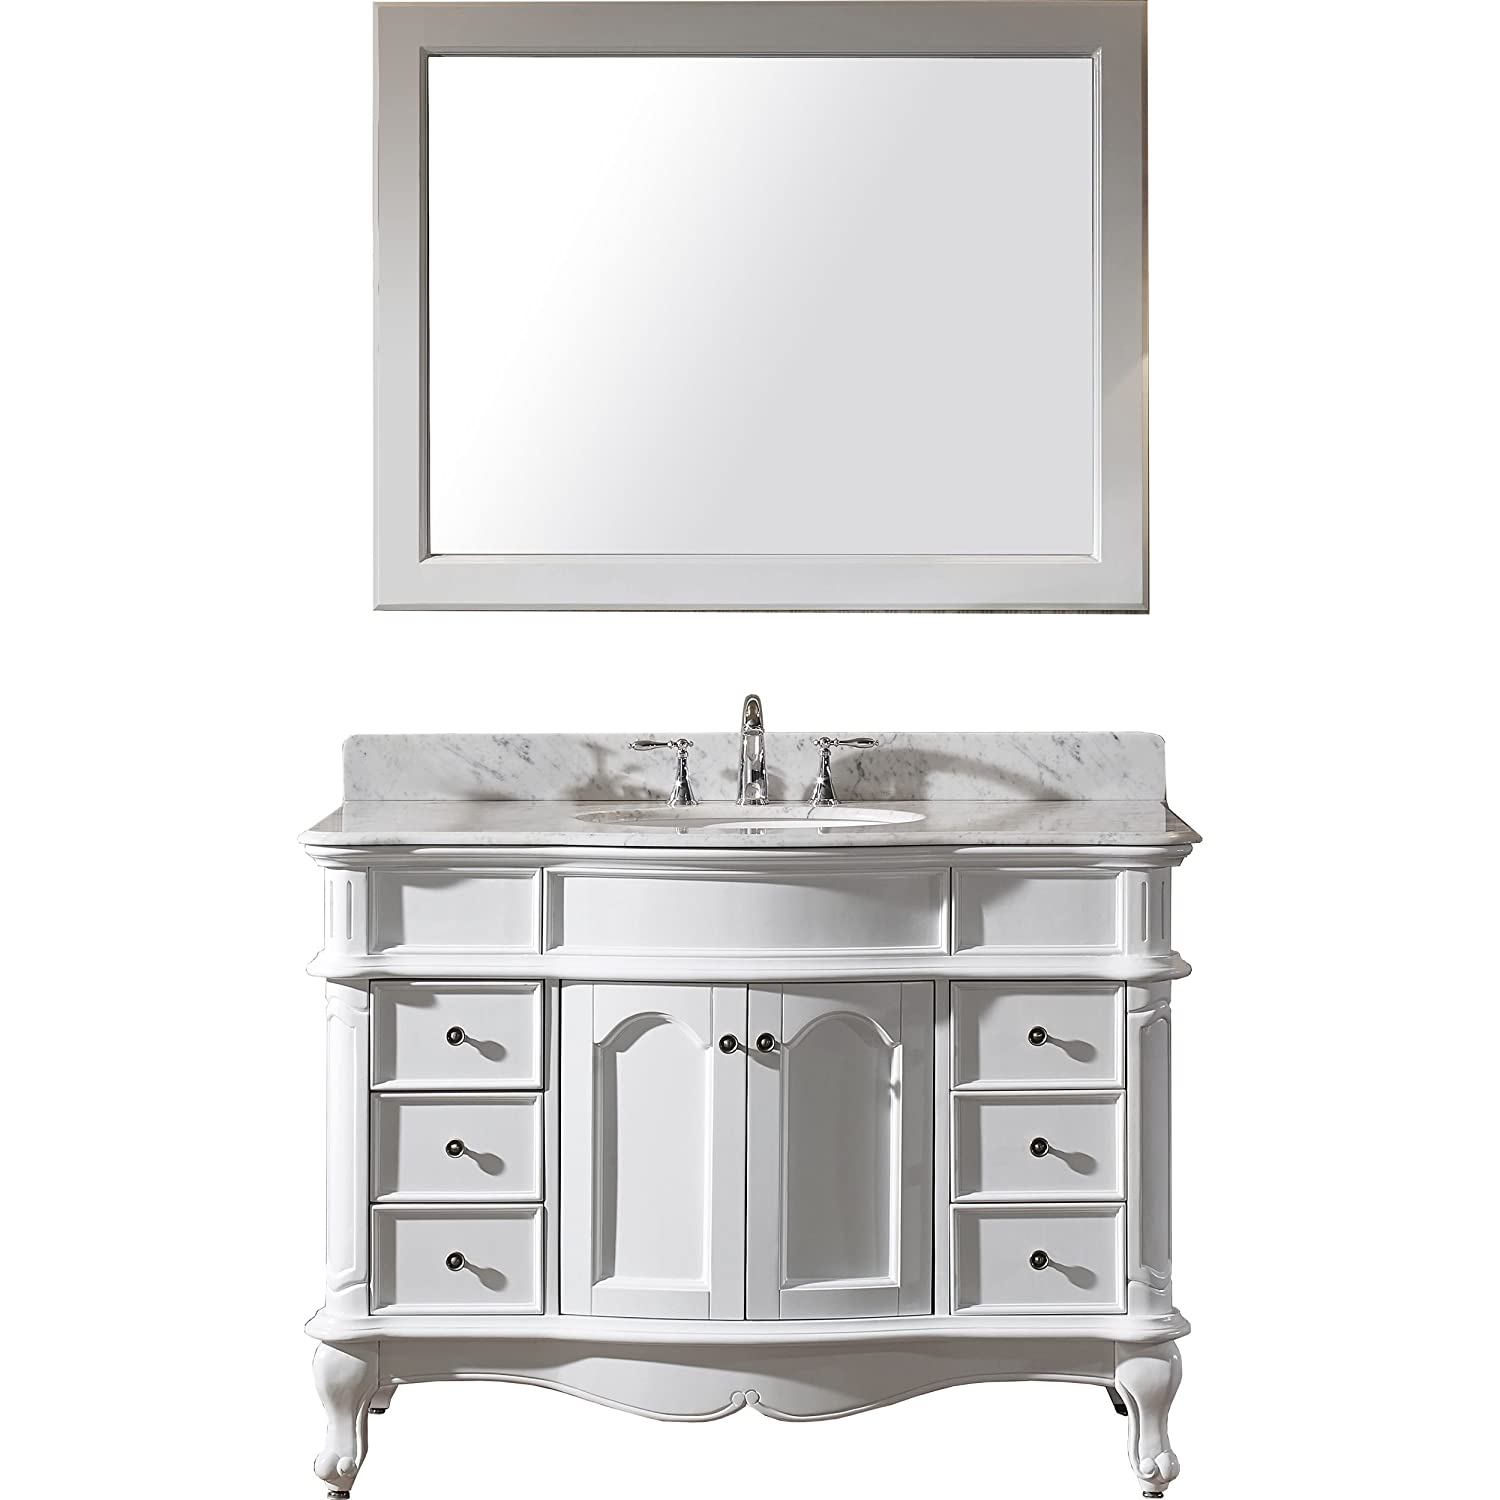 Virtu ES WMRO WH Norhaven Single Bathroom Vanity Cabinet Set